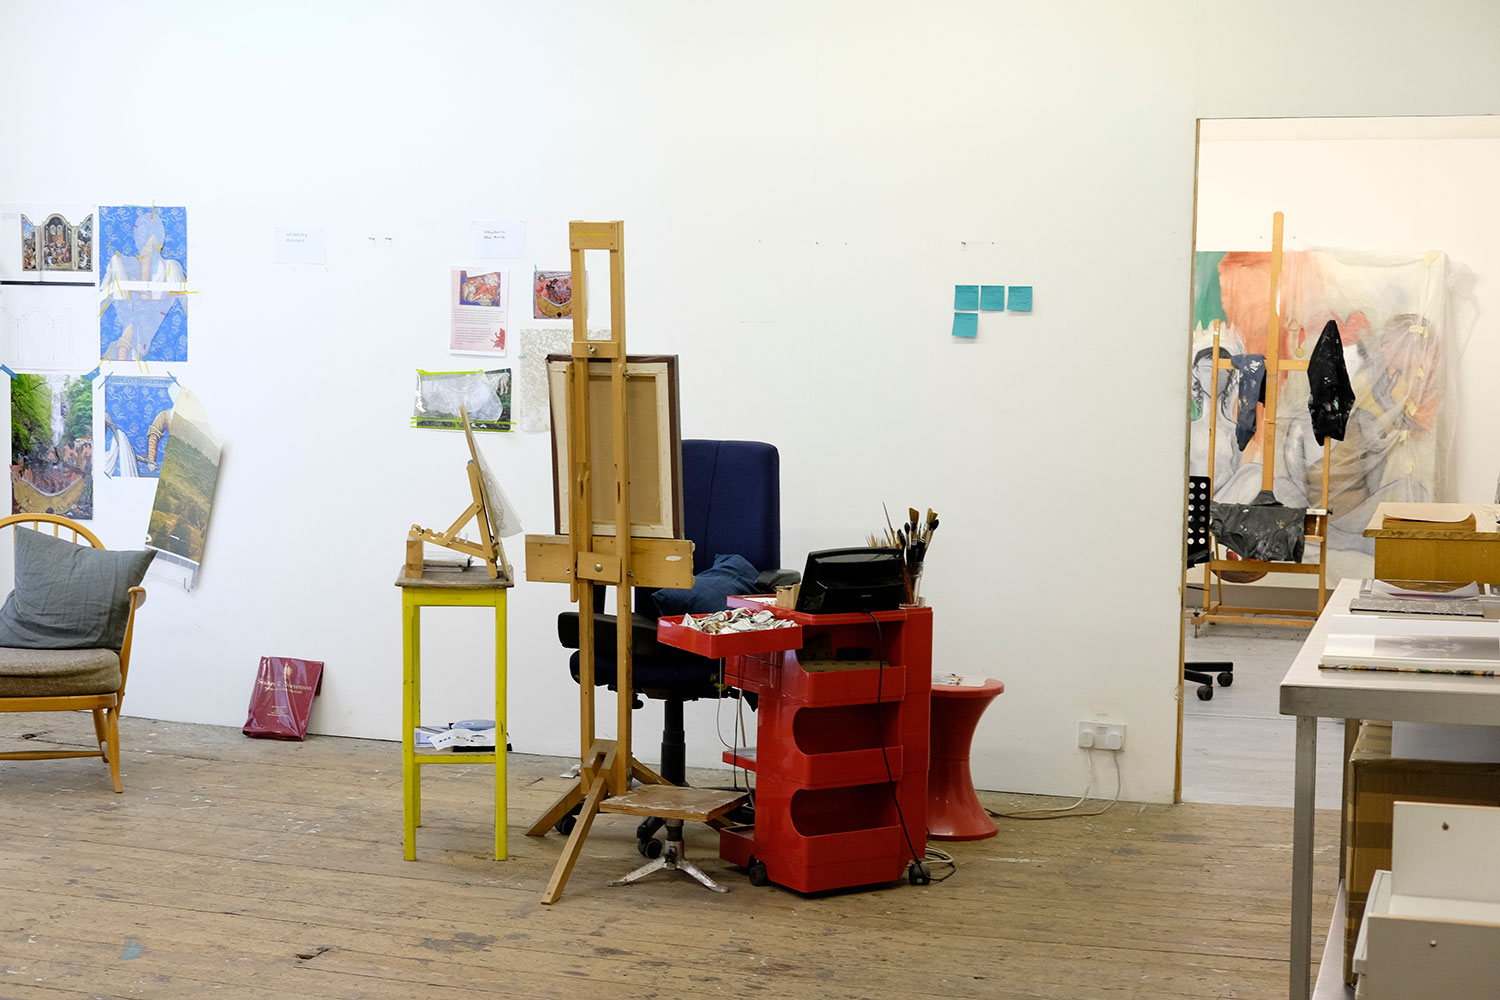 Studio space above Nunnery Gallery in Bow, East London